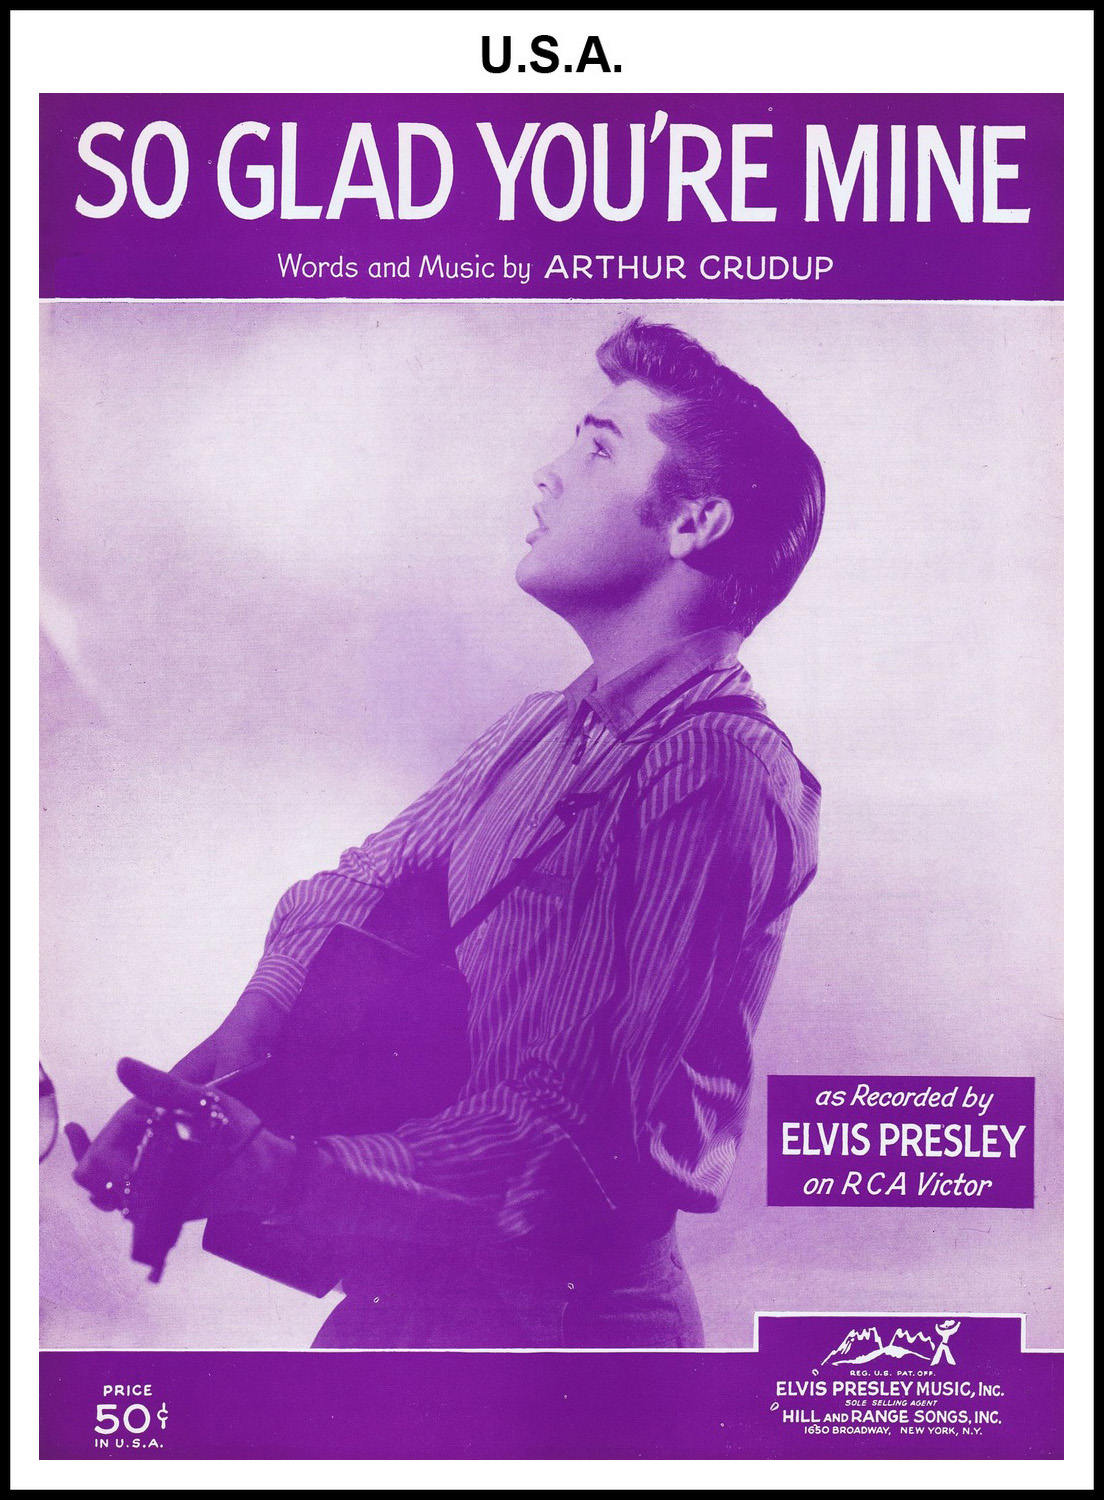 1956 - So Glad You're Mine (USA 50c) (CHRIS GILES COLLECTION)